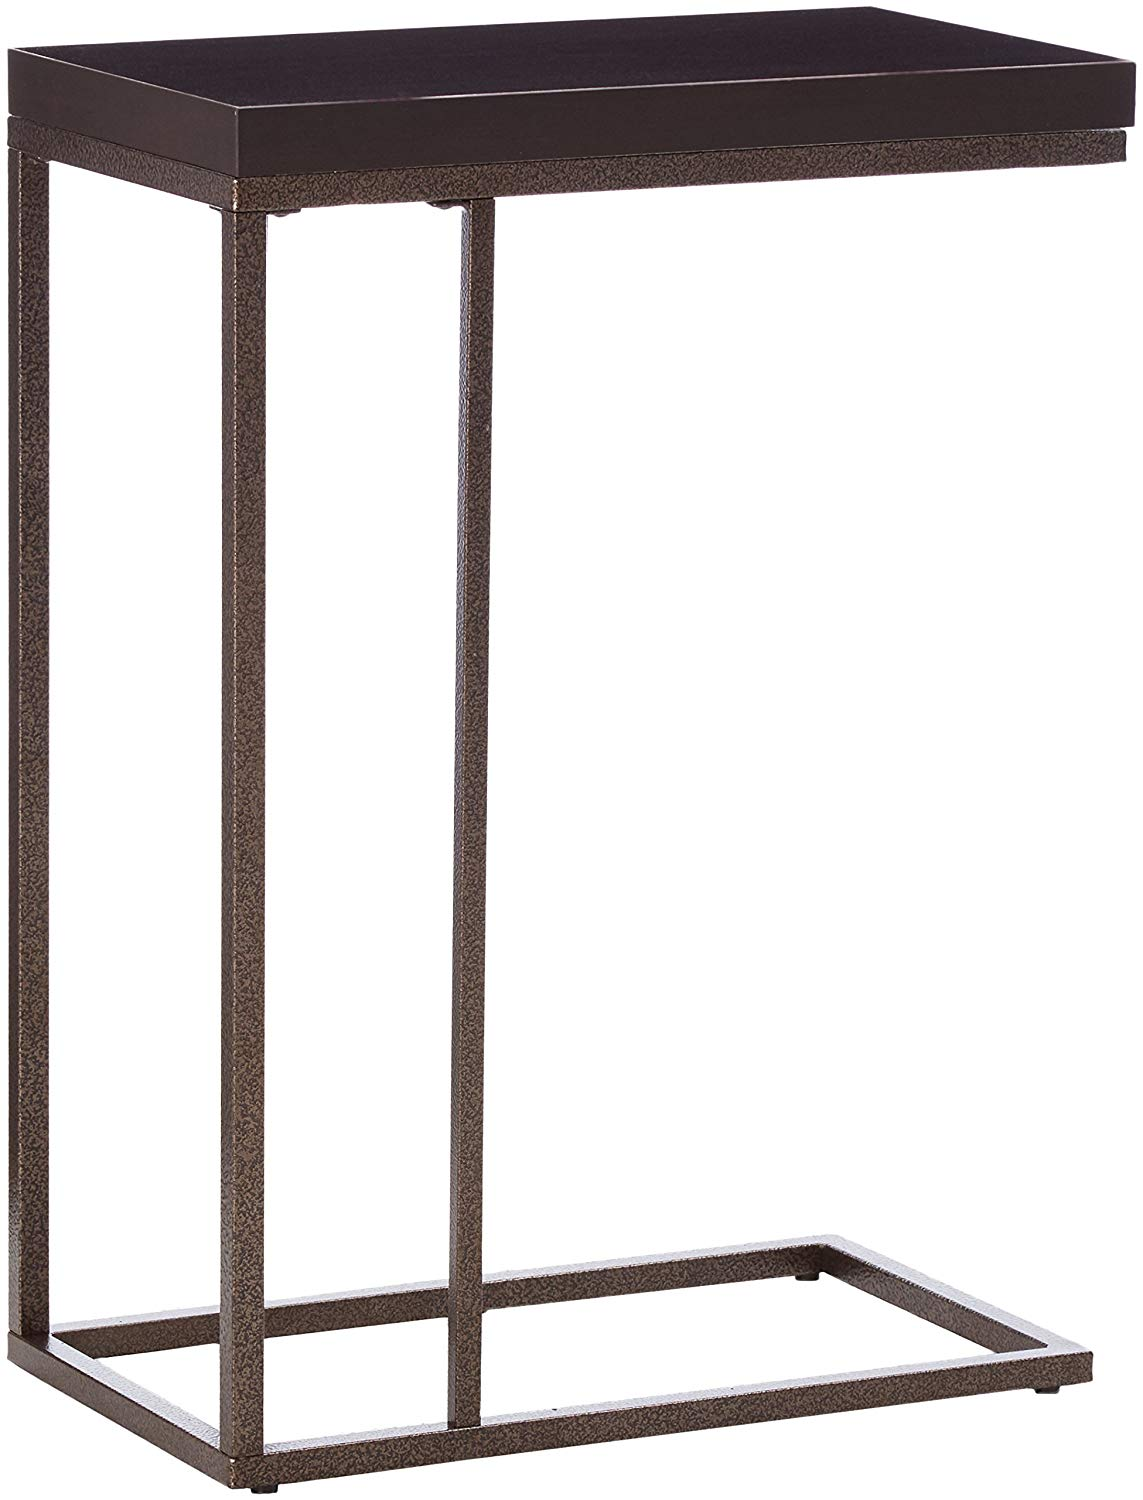 monarch specialties accent table bronze metal cappuccino marble kitchen dining pier imports mirrors tripod floor lamp target used office furniture vancouver frame side chaise